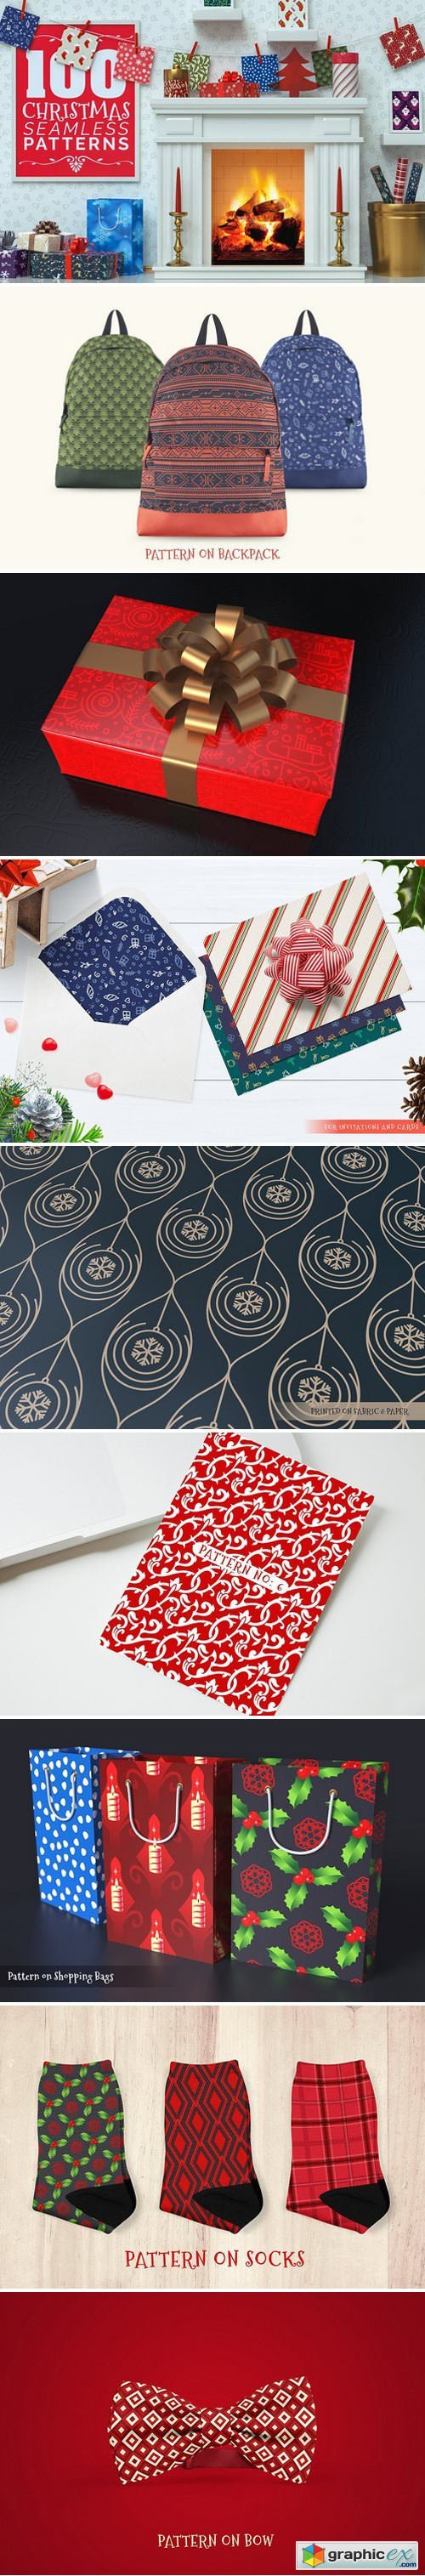 100 Christmas Seamless Patterns